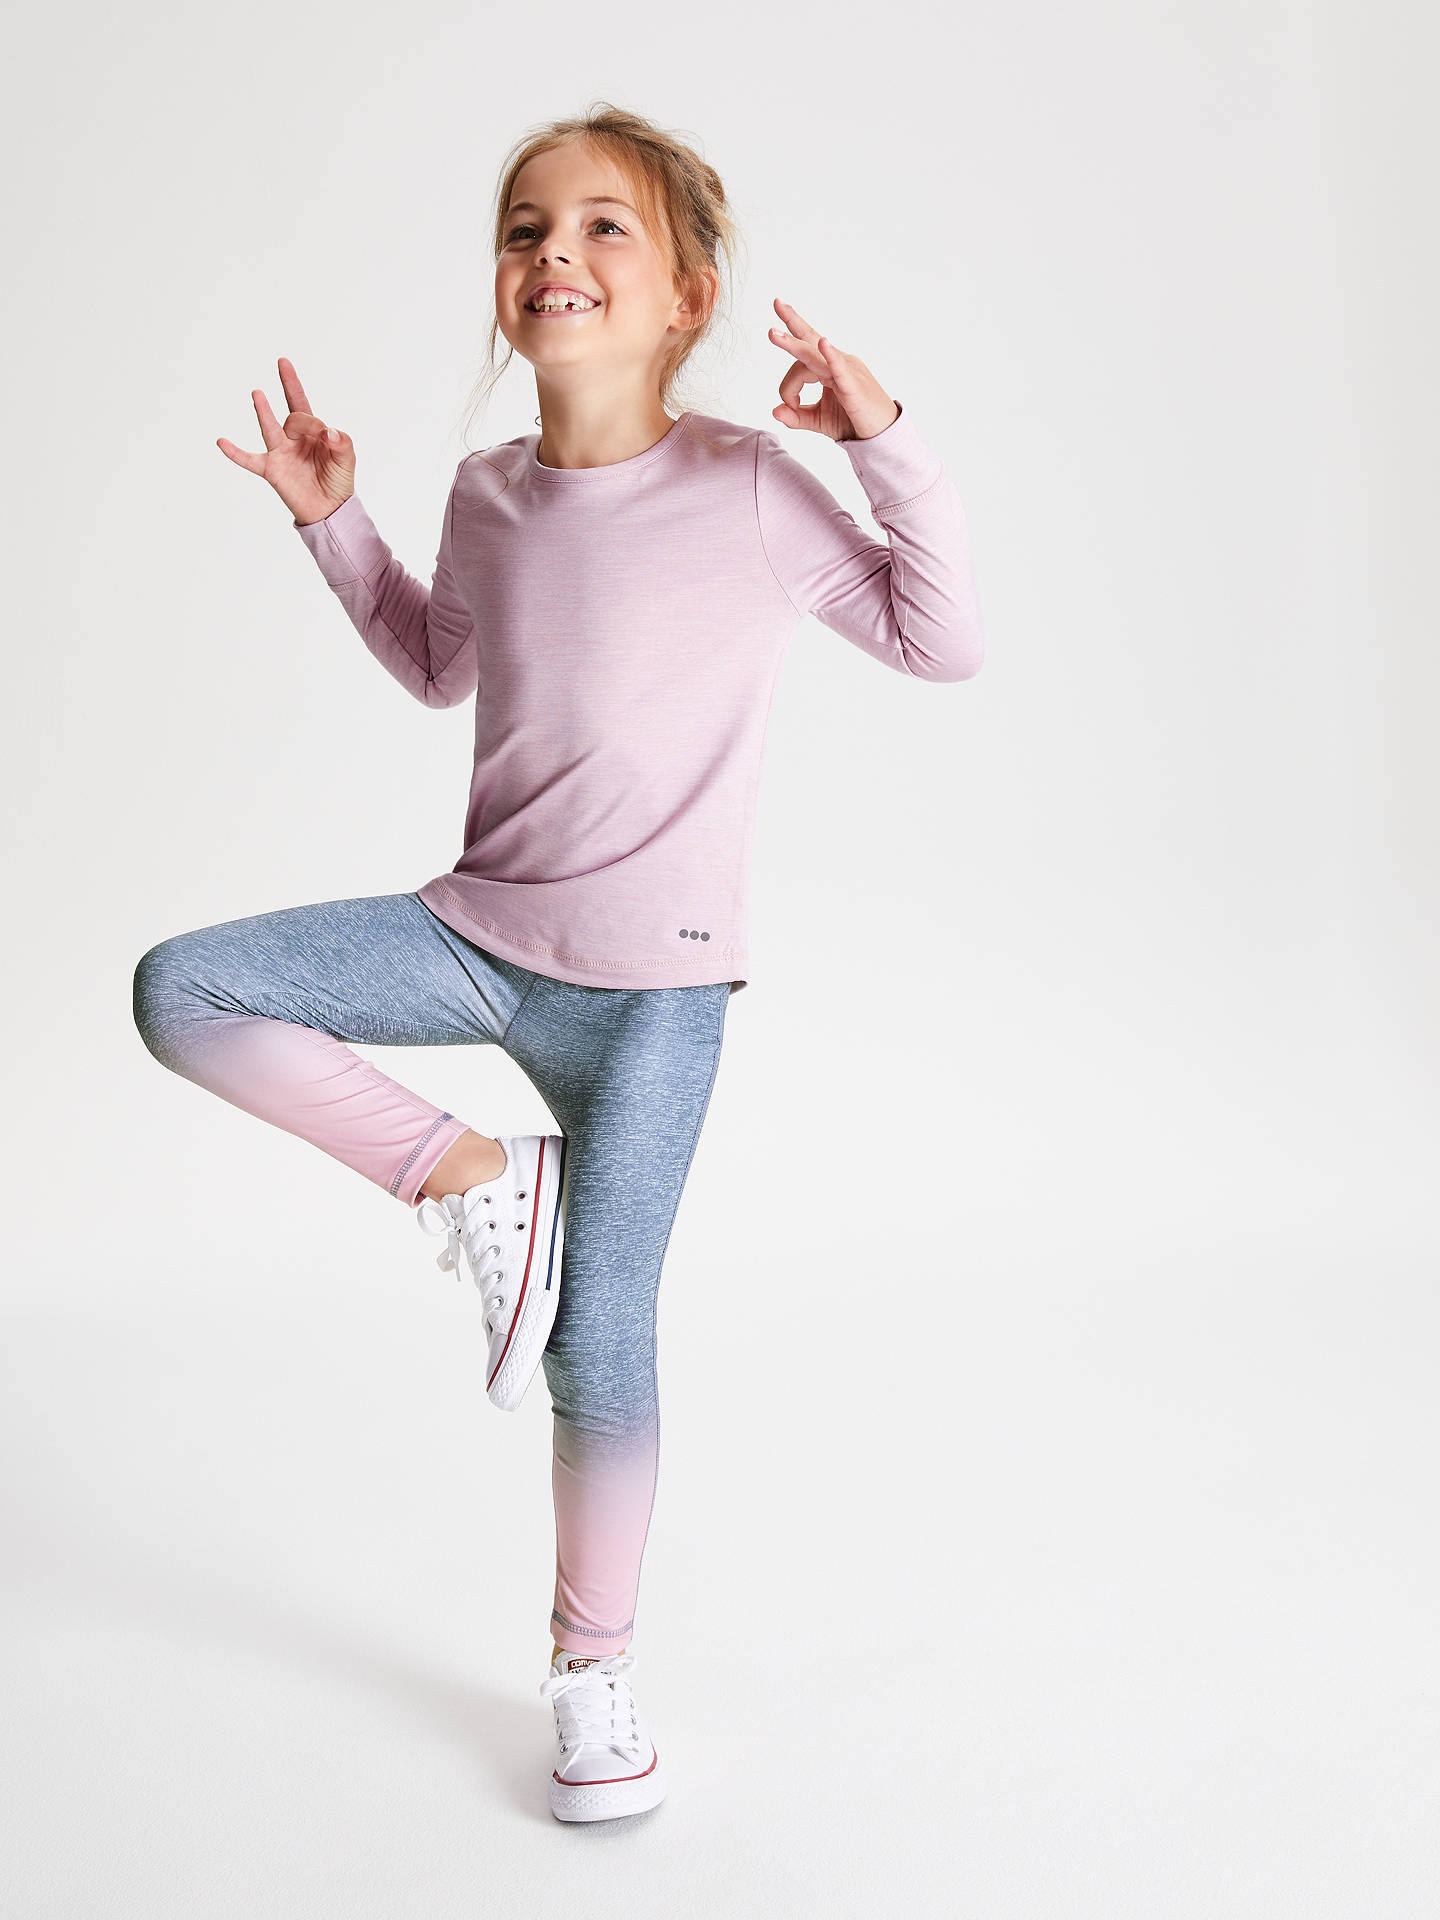 Buy John Lewis & Partners Girls' Ombre Sports Leggings, Lilac, 3 years Online at johnlewis.com